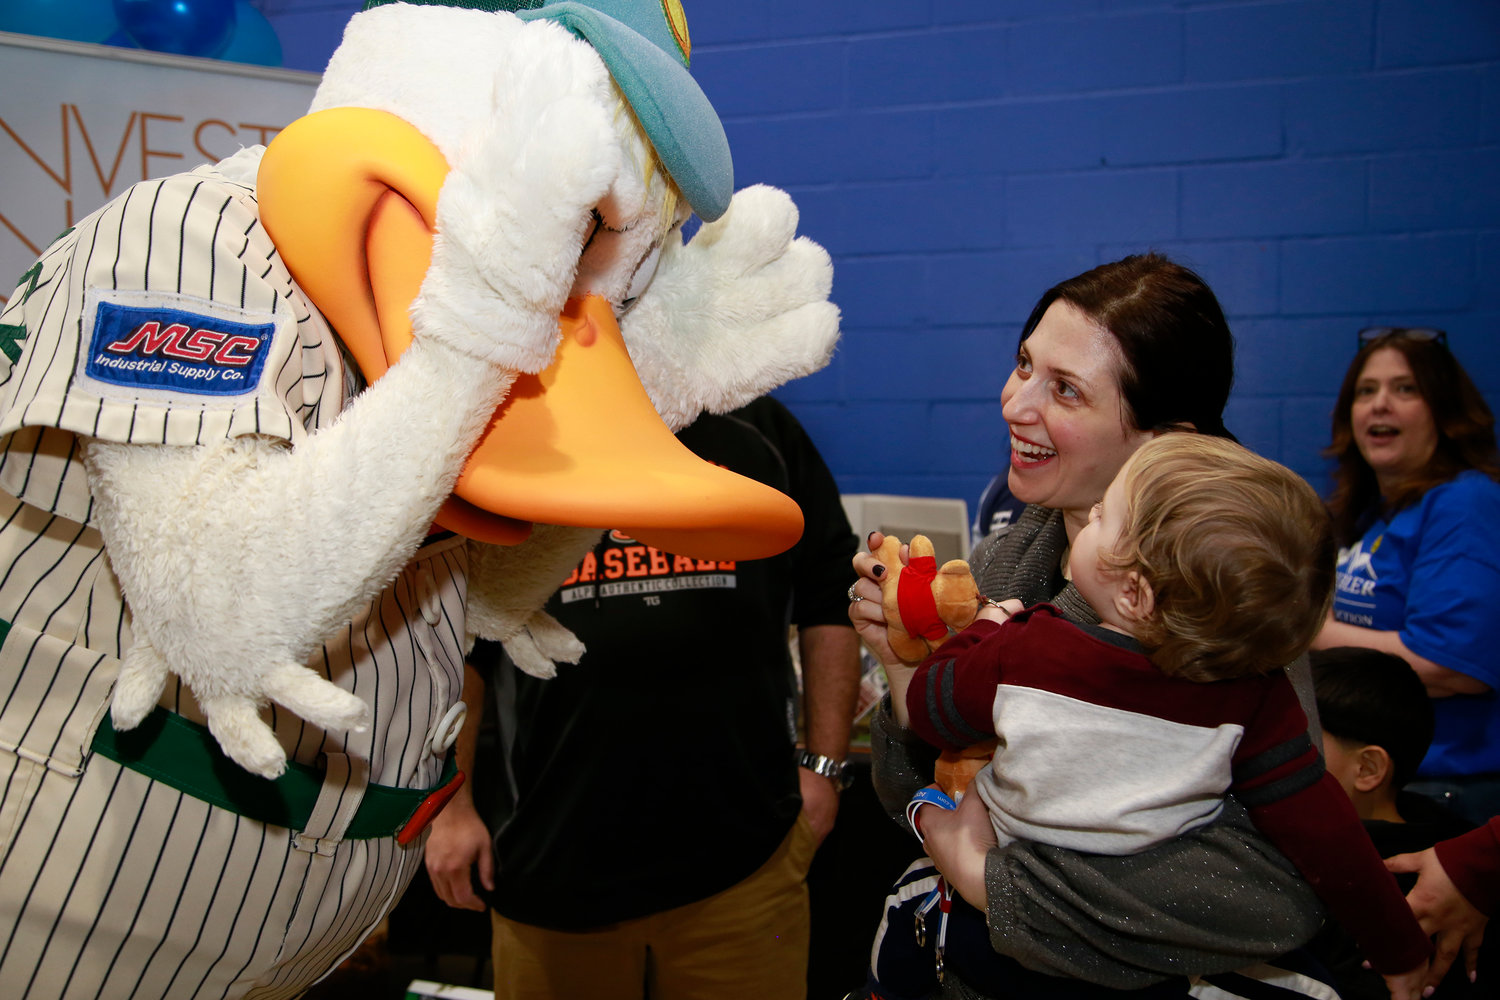 Long Island Ducks mascot Quacker Jack played peek-a-boo with 10-month-old Benjamin Tarasuk and his mom, Debbie.